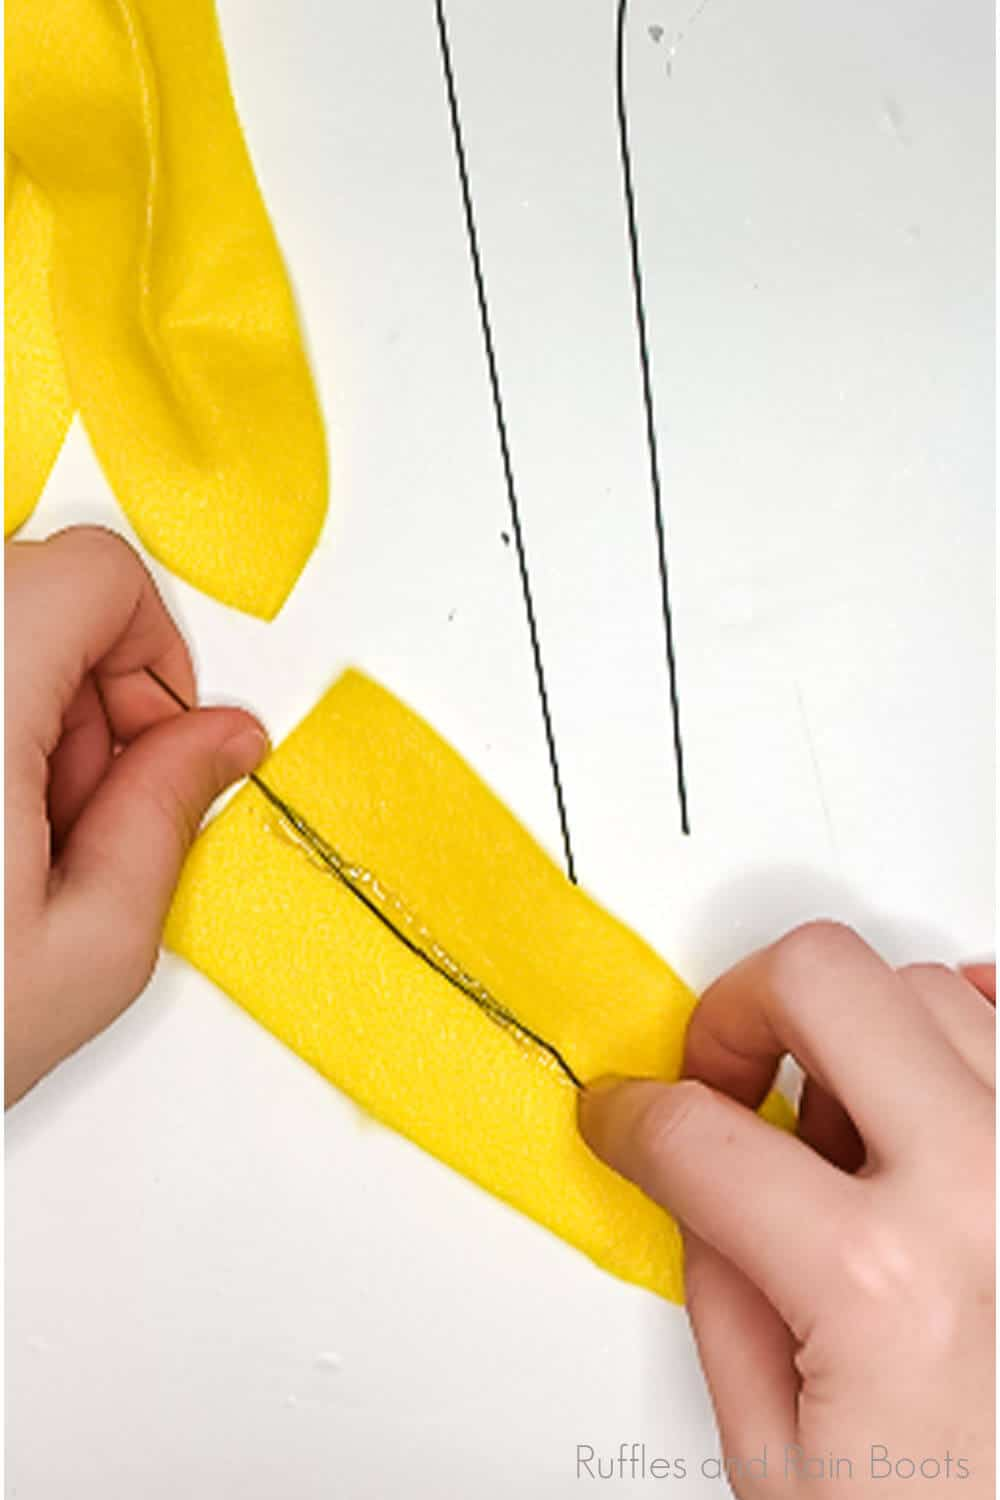 in-process step of making posable flower petals to make a sewing pattern for a sunflower gnome